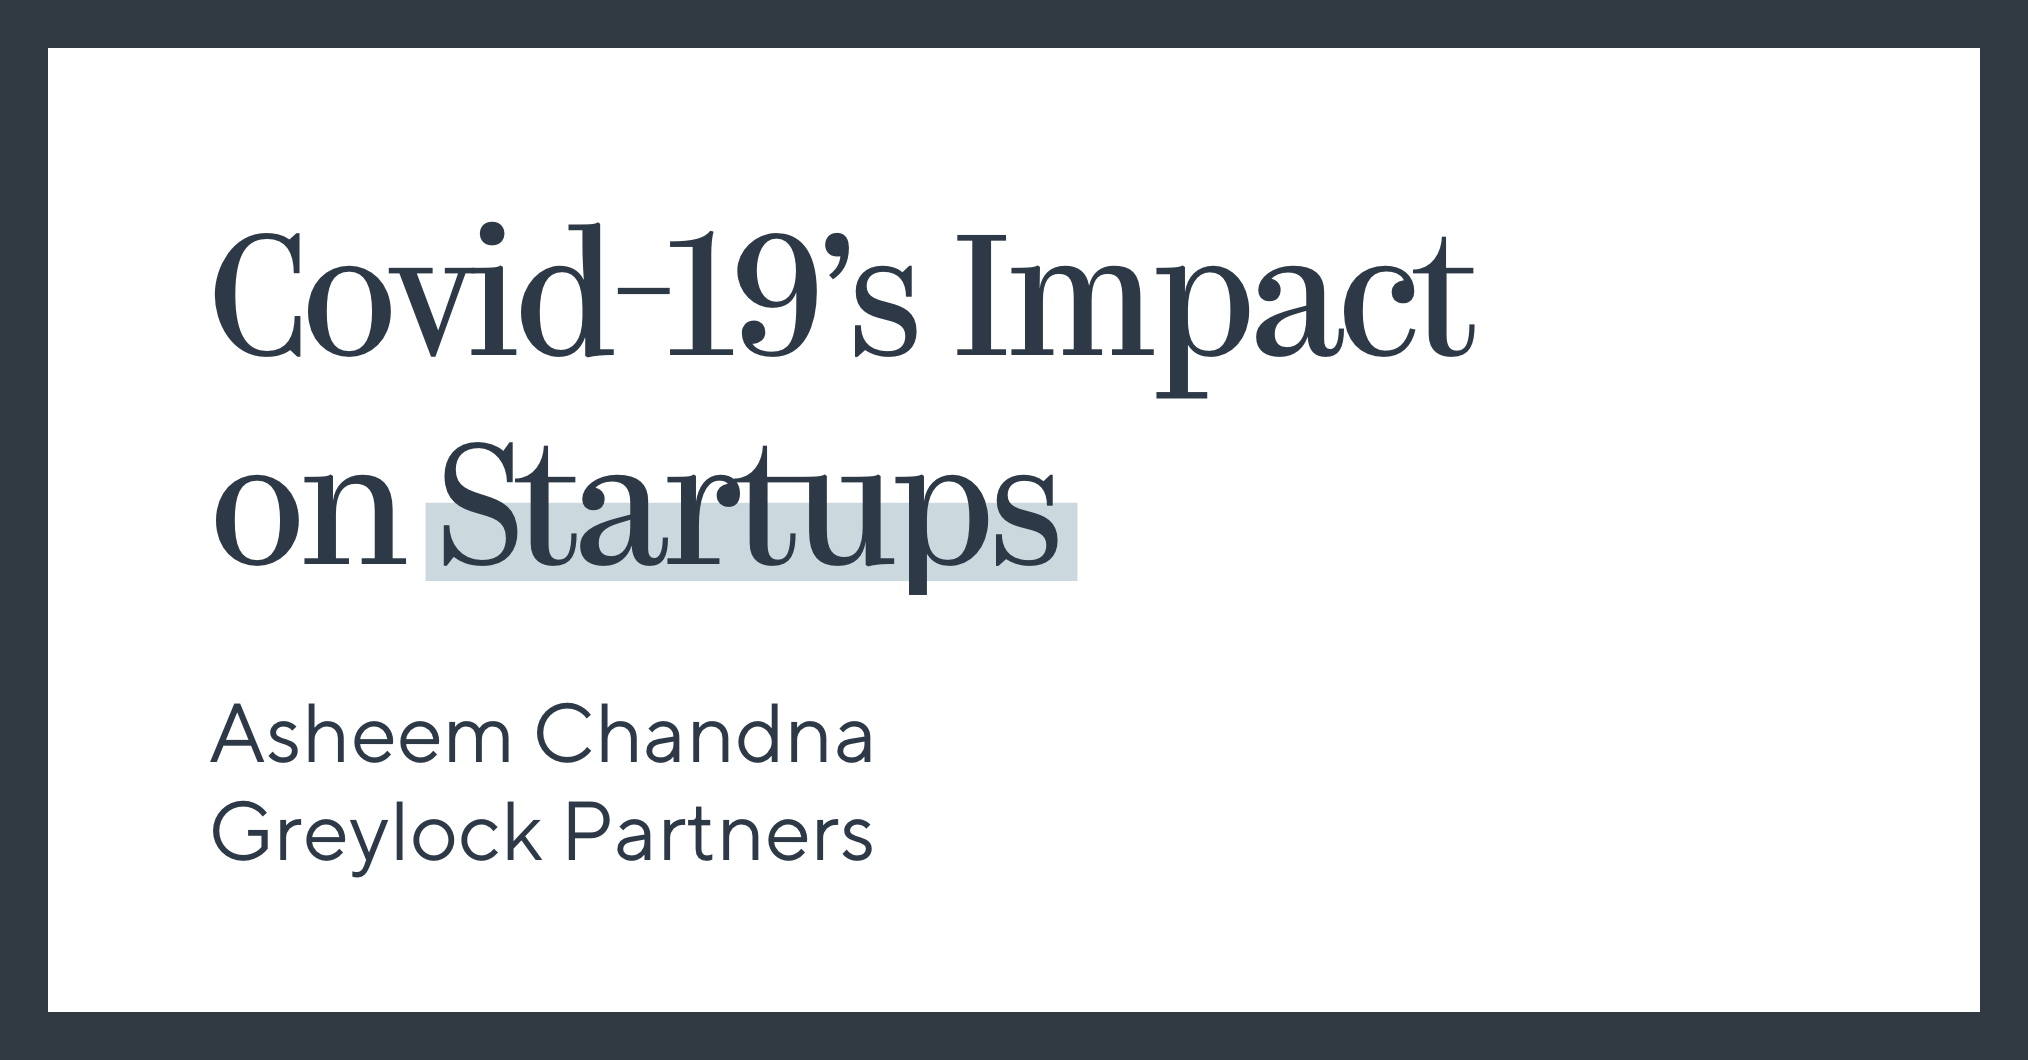 Covid-19's Impact on Startups